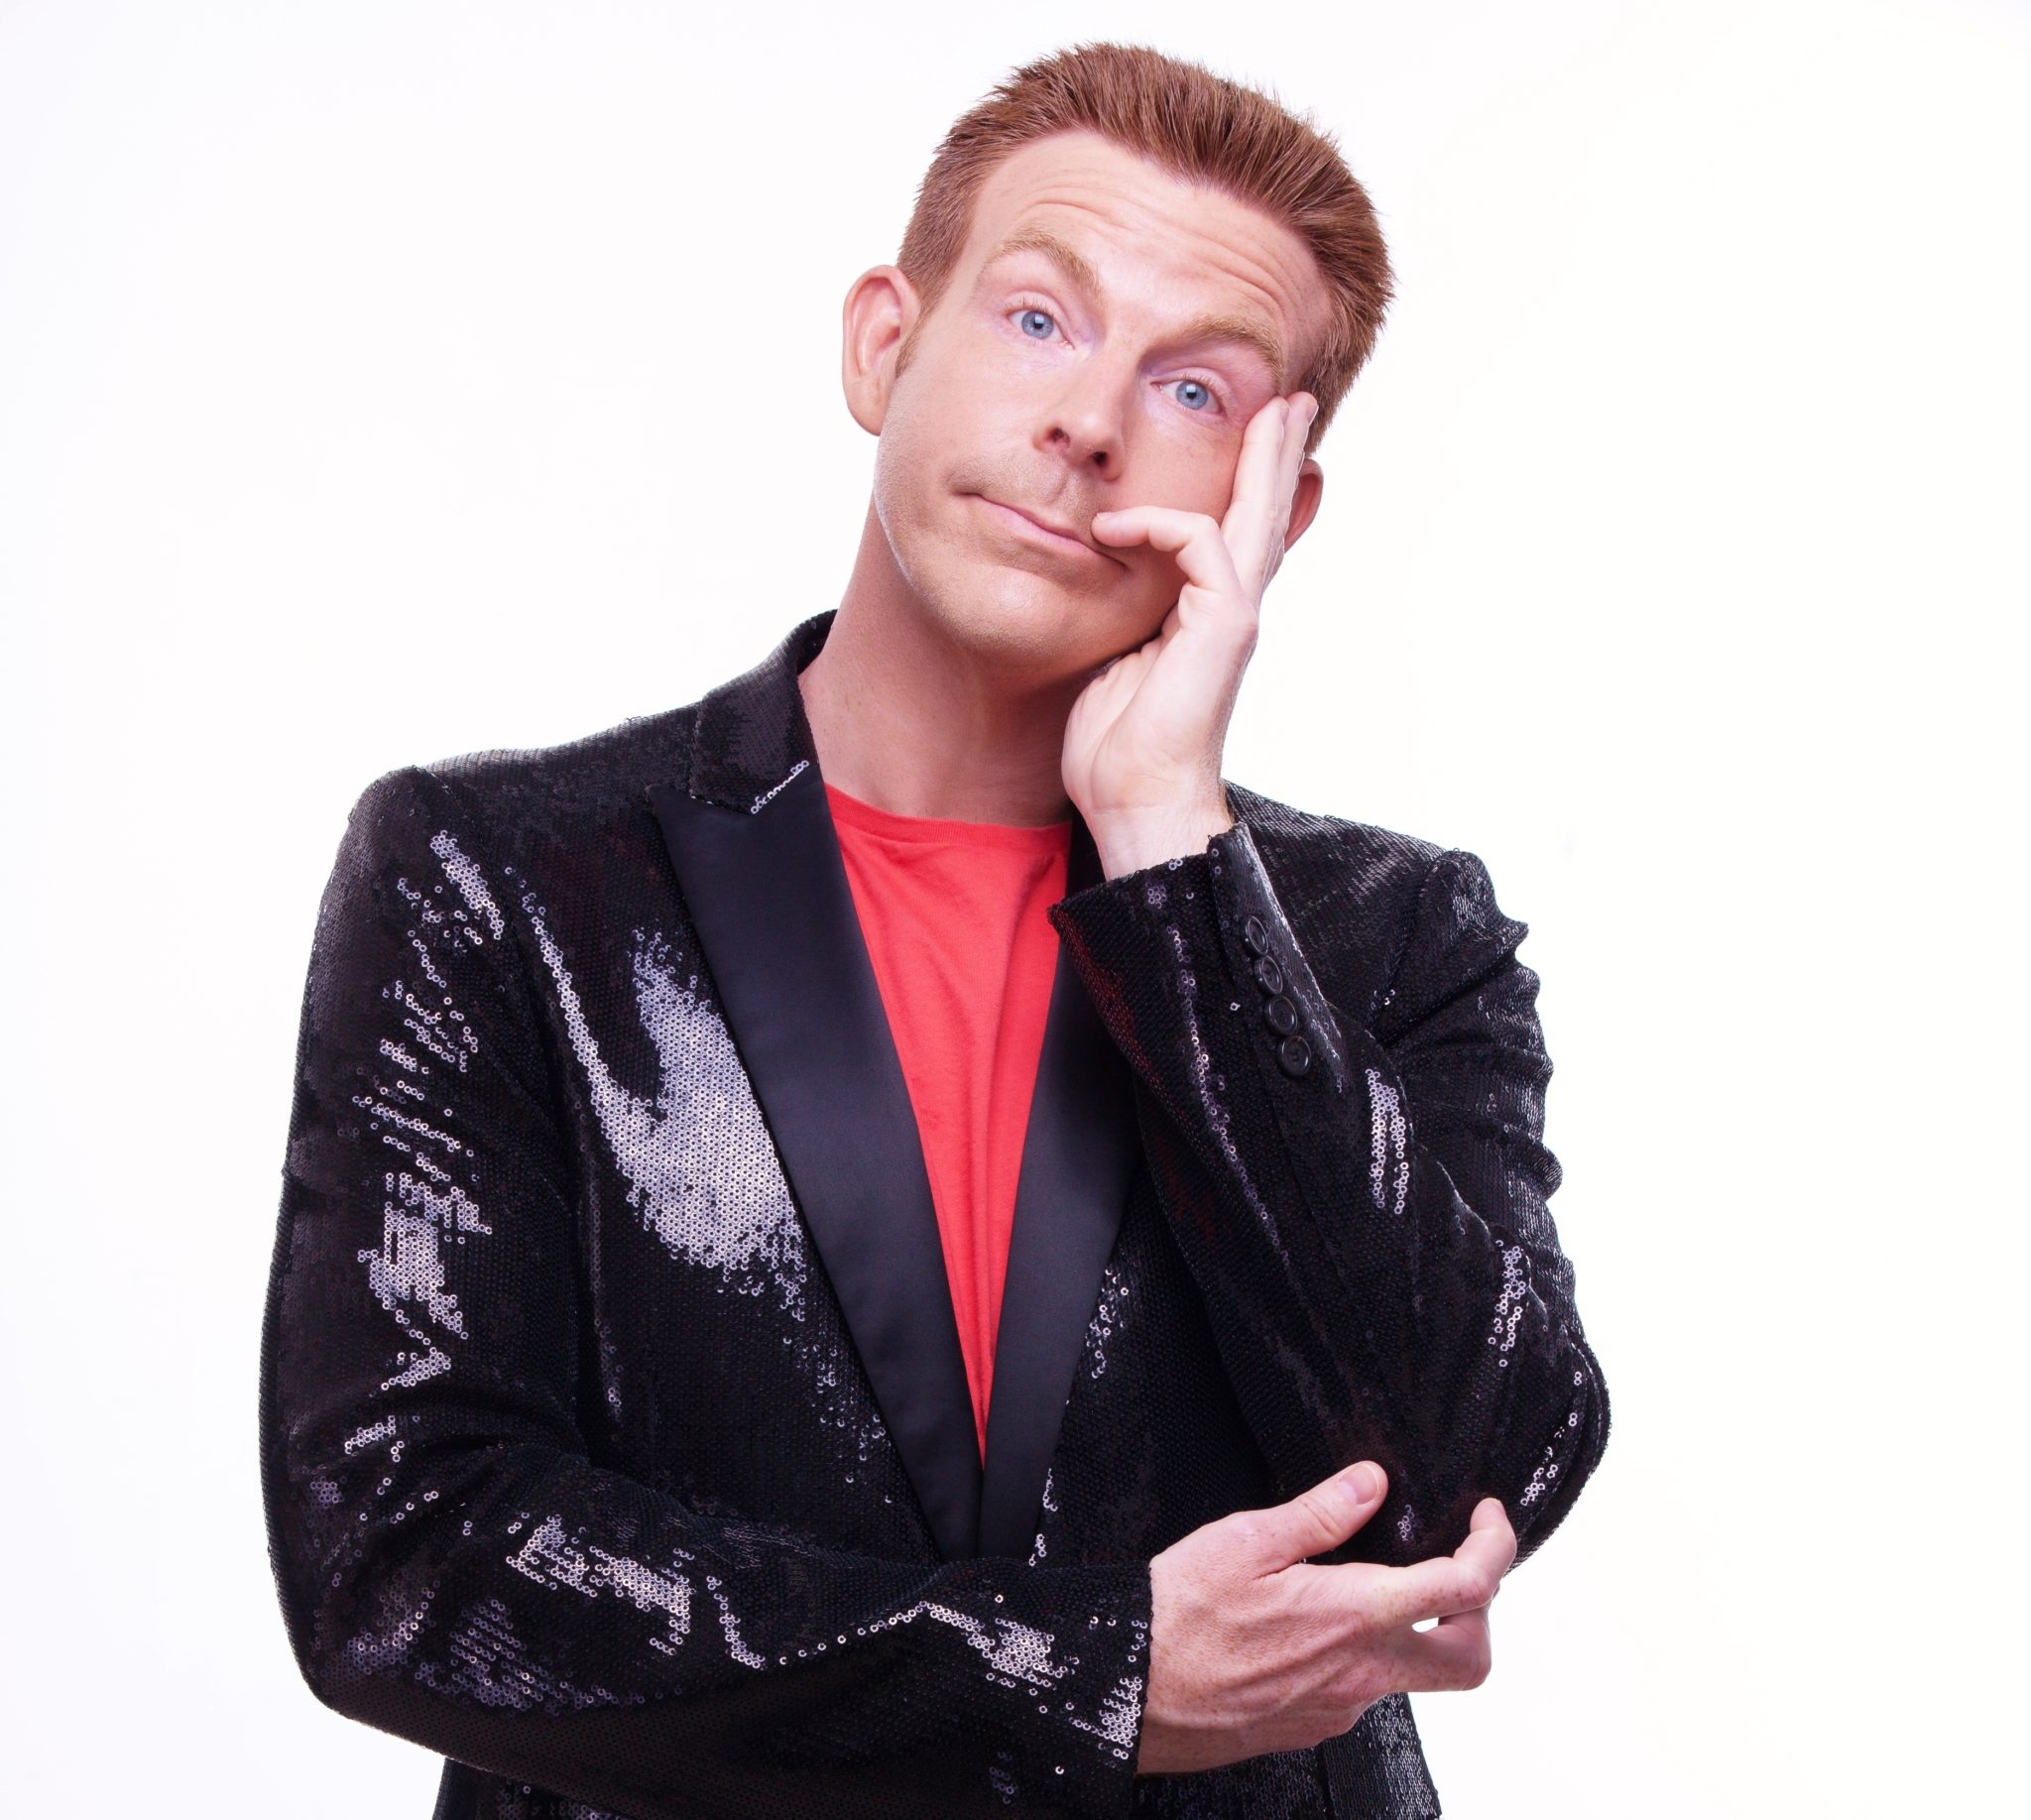 Alex Belfield is a Broadcaster, Musician, Comedian and Entertainer from Nottingham. Email – alex@alexbelfield.co.uk From Warm Up @ ITV, Newspaper Exclusives to sell-out tours – […]